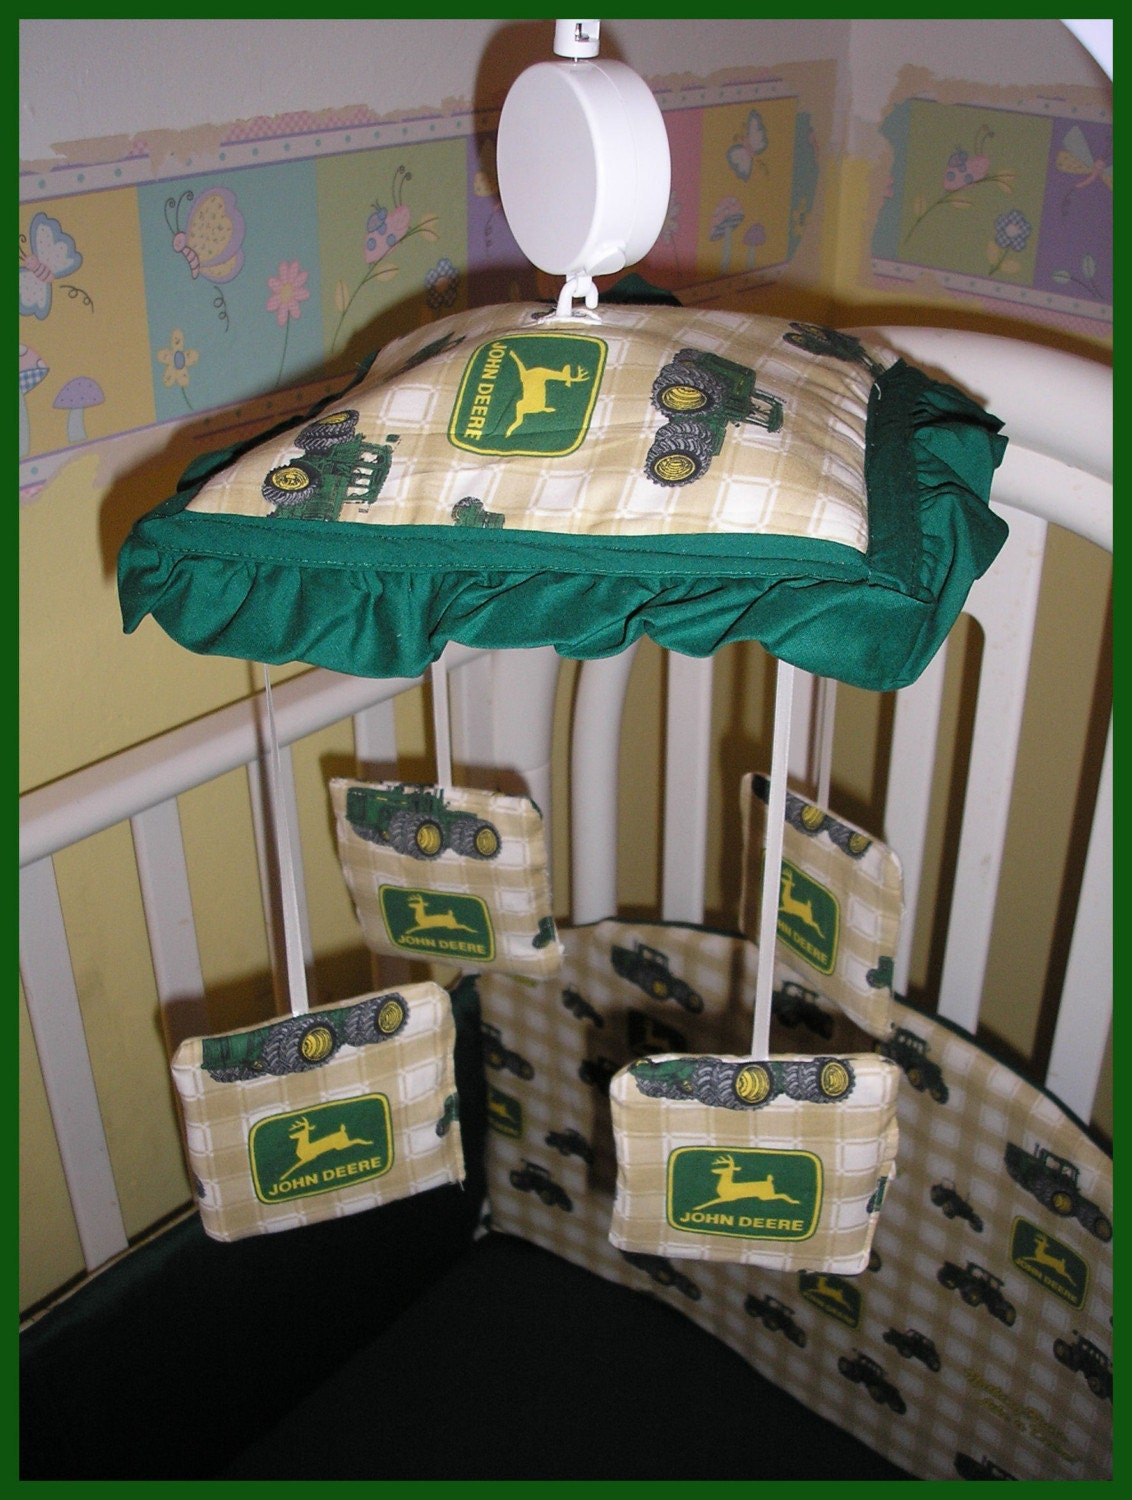 Tractor Mobile For Cribs : New musical crib mobile made in john deere tractor fabrics